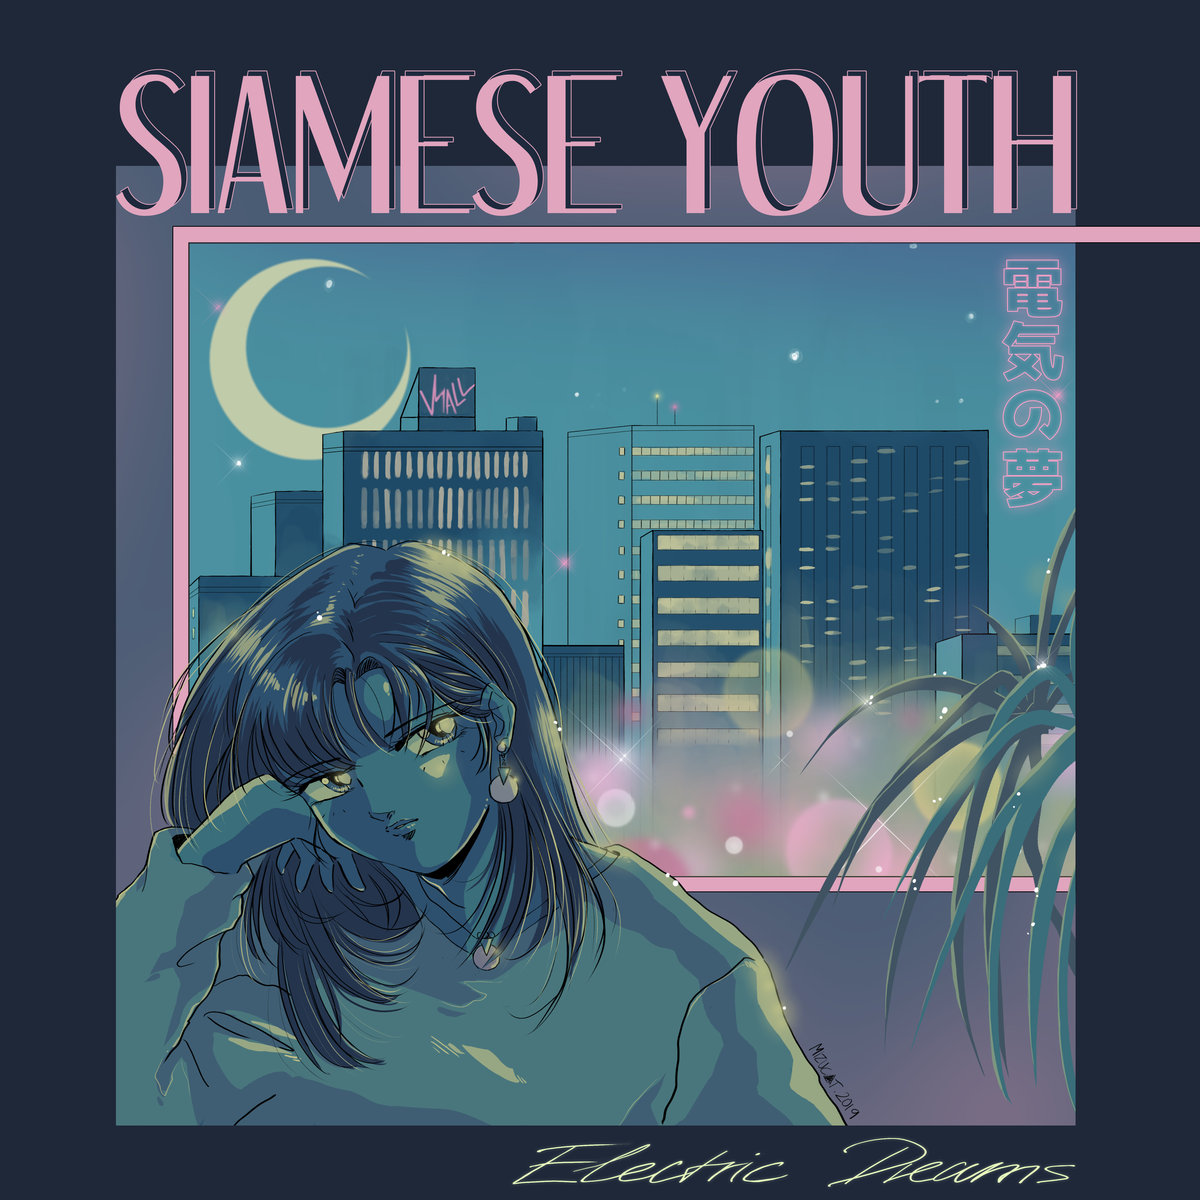 a0571635547 10 1 - Siamese Youth - Electric Dreams Review